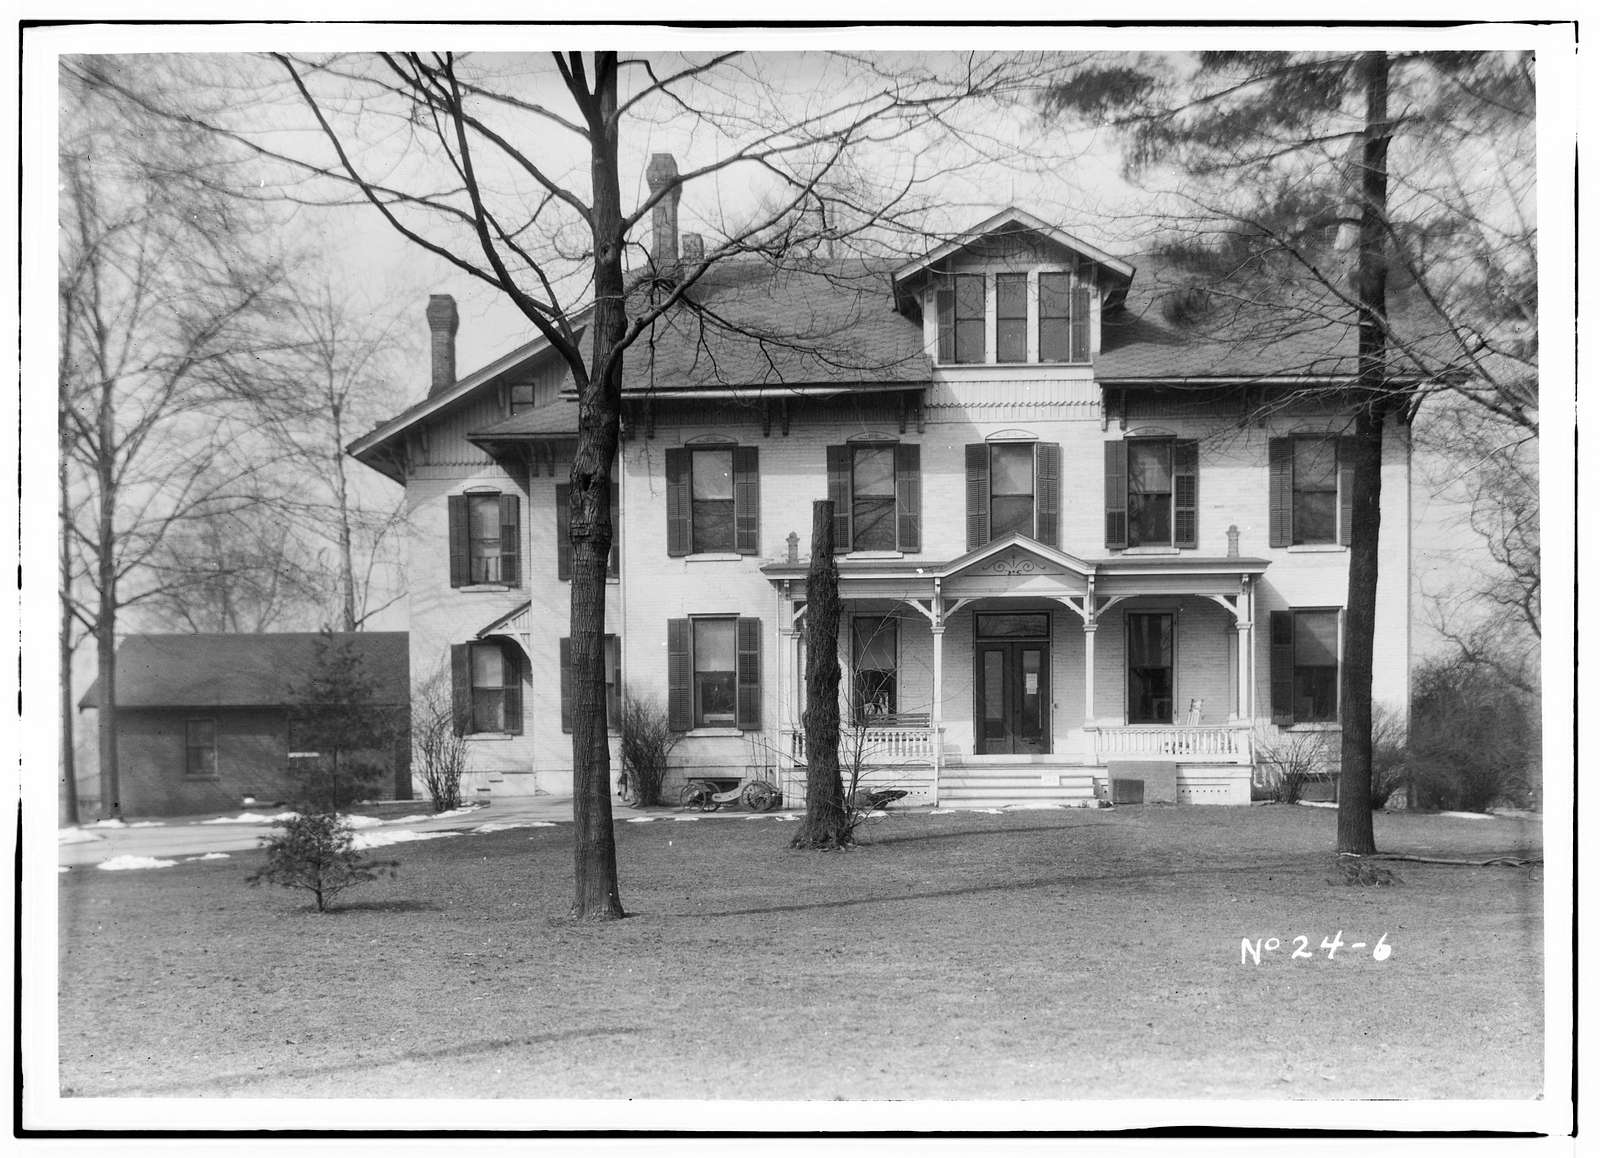 Swinney House, Swinney Park & Jefferson Street, Fort Wayne, Allen County, IN